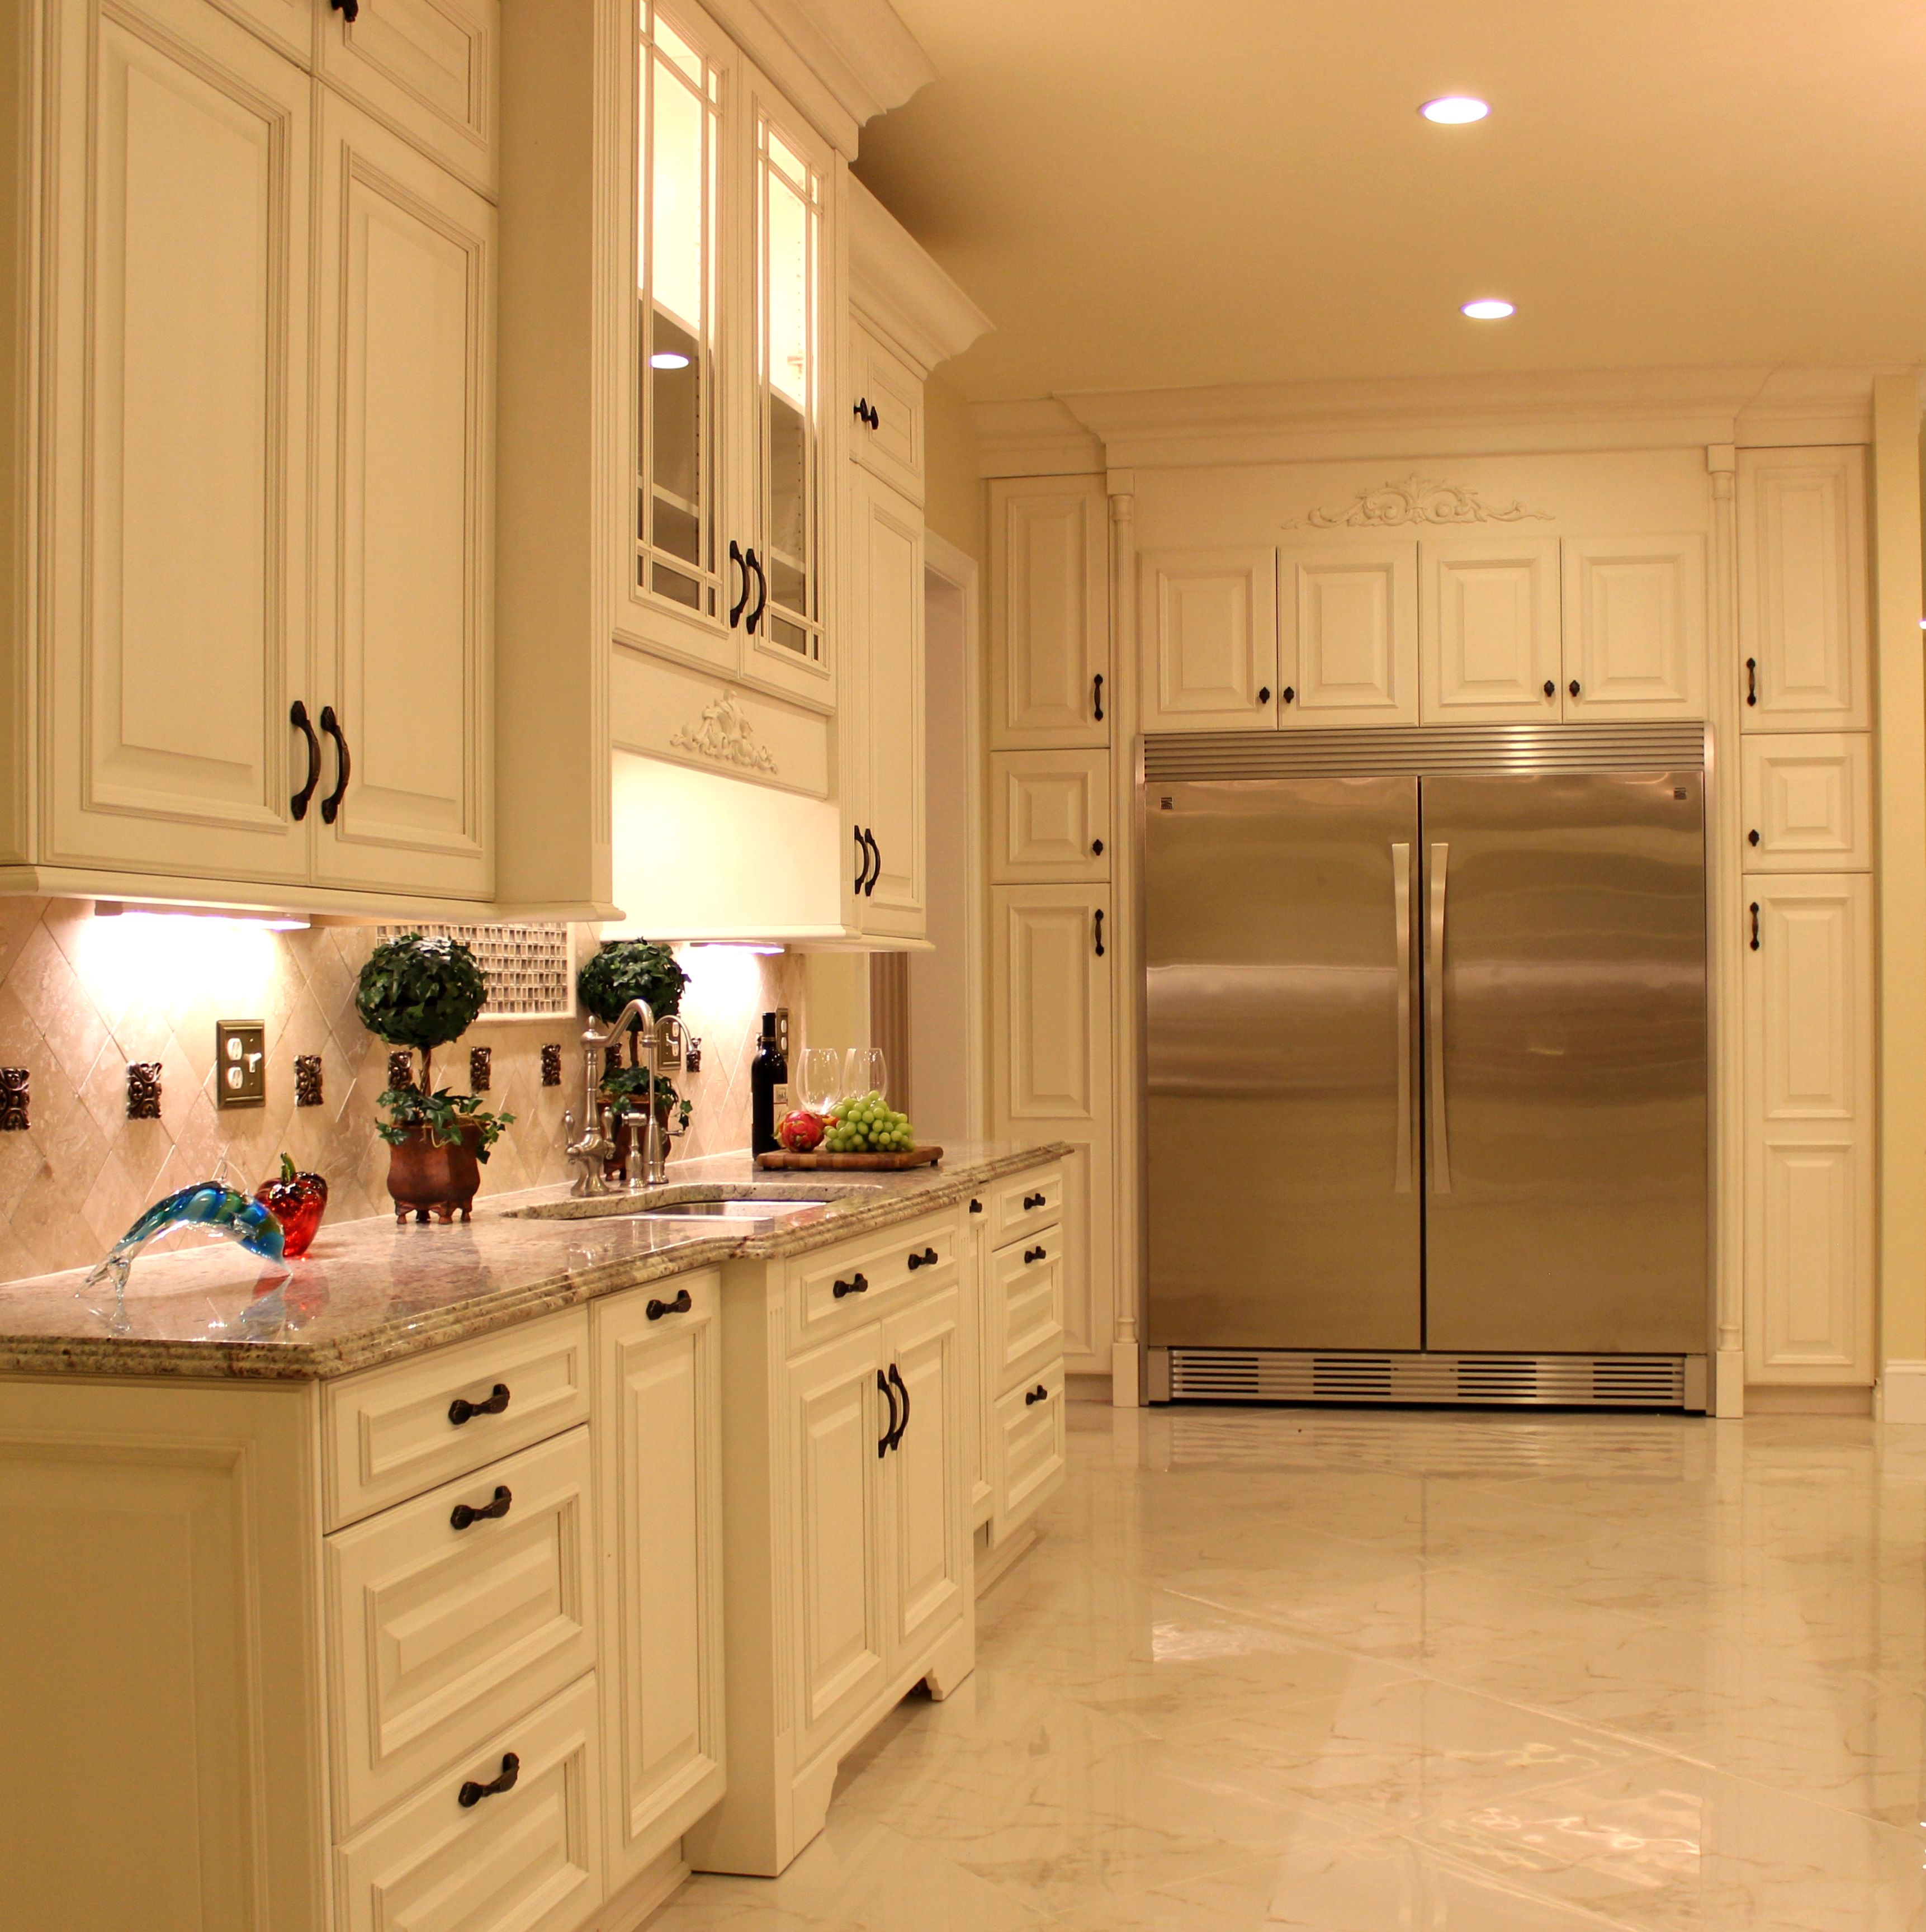 Grandior, Maryland's Premier Kitchen & Bath Interior